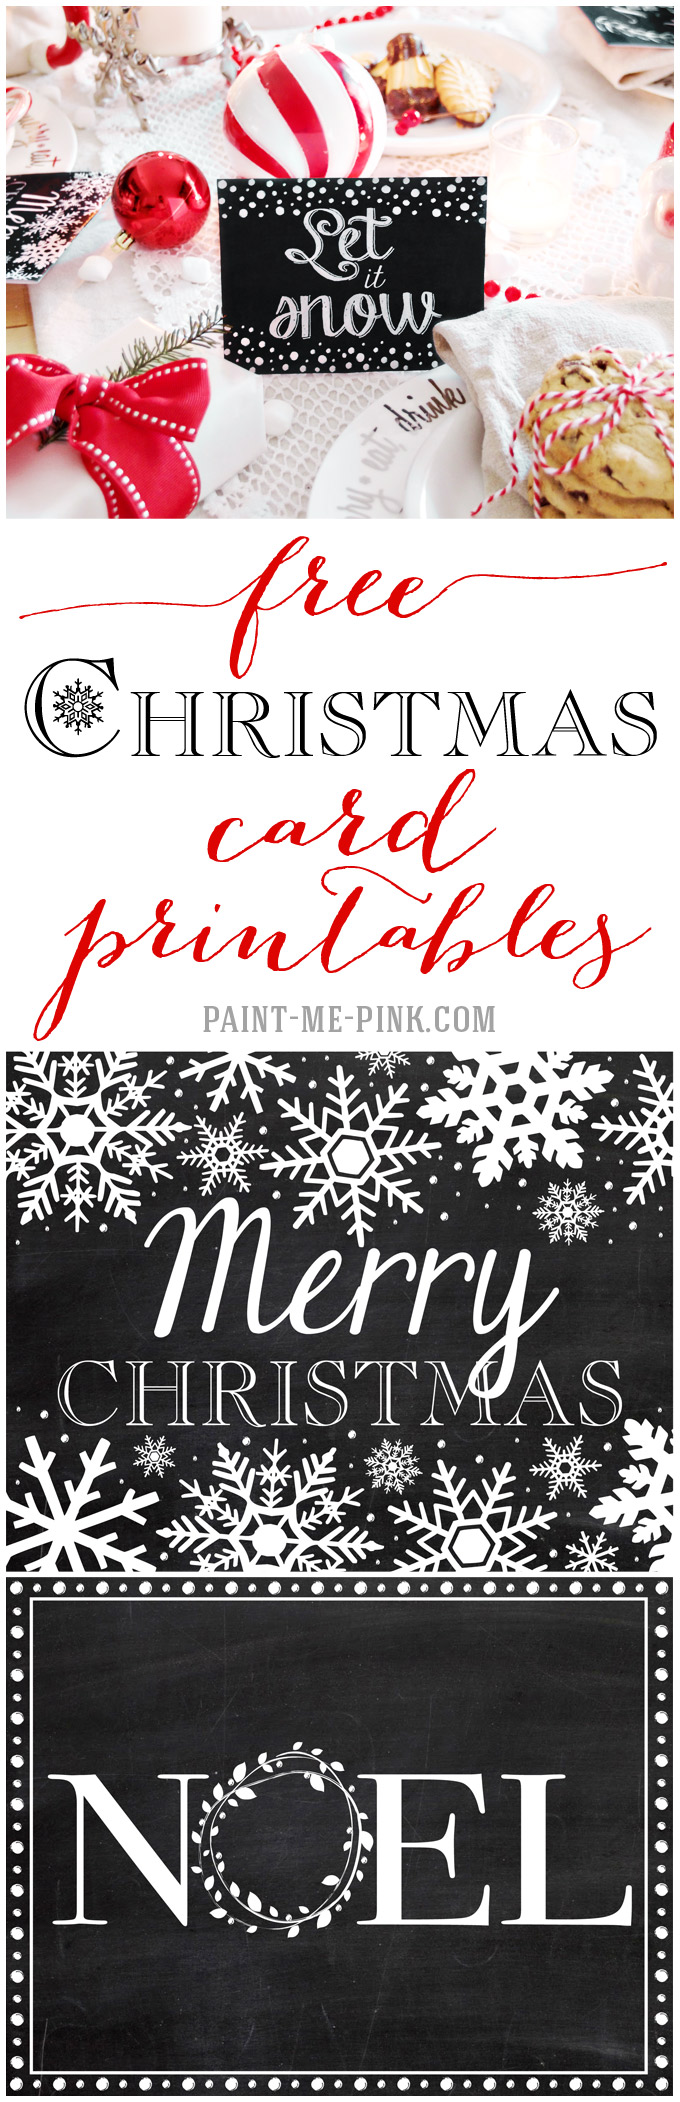 free printable christmas placecards - paint me pink